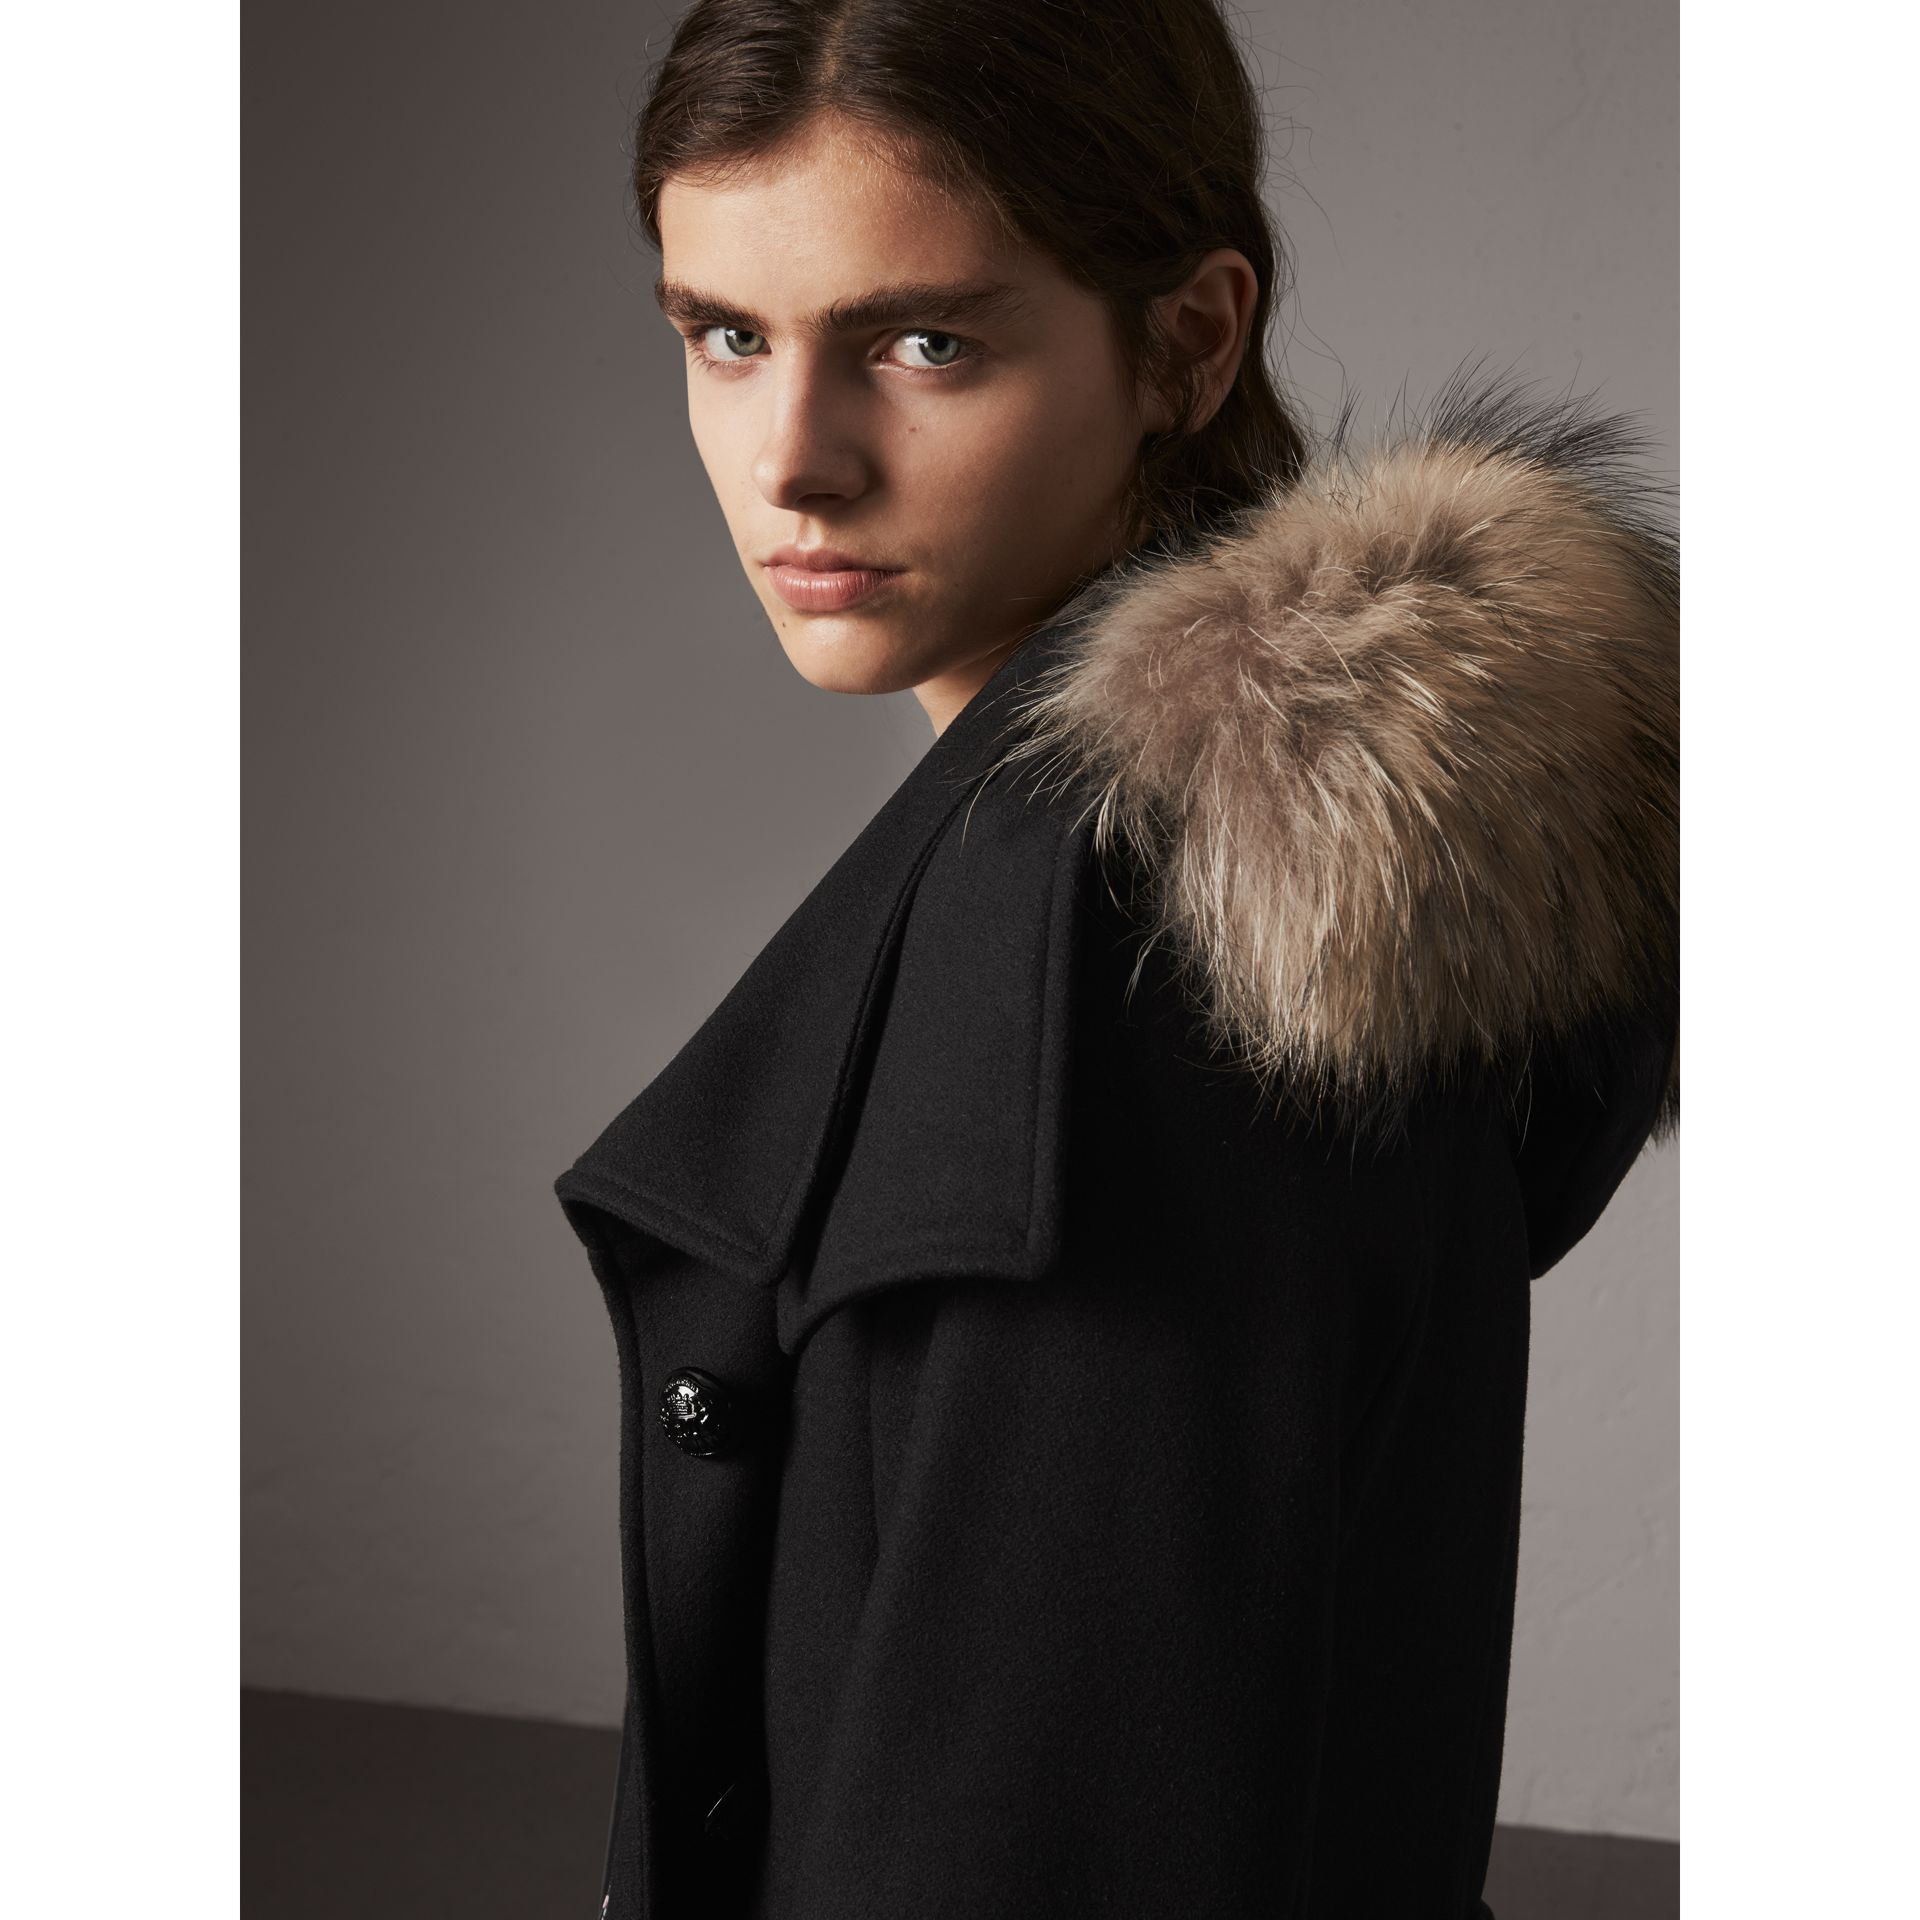 Hooded Wool Blend Coat with Detachable Fur Trim in Black - Women | Burberry United States - gallery image 5